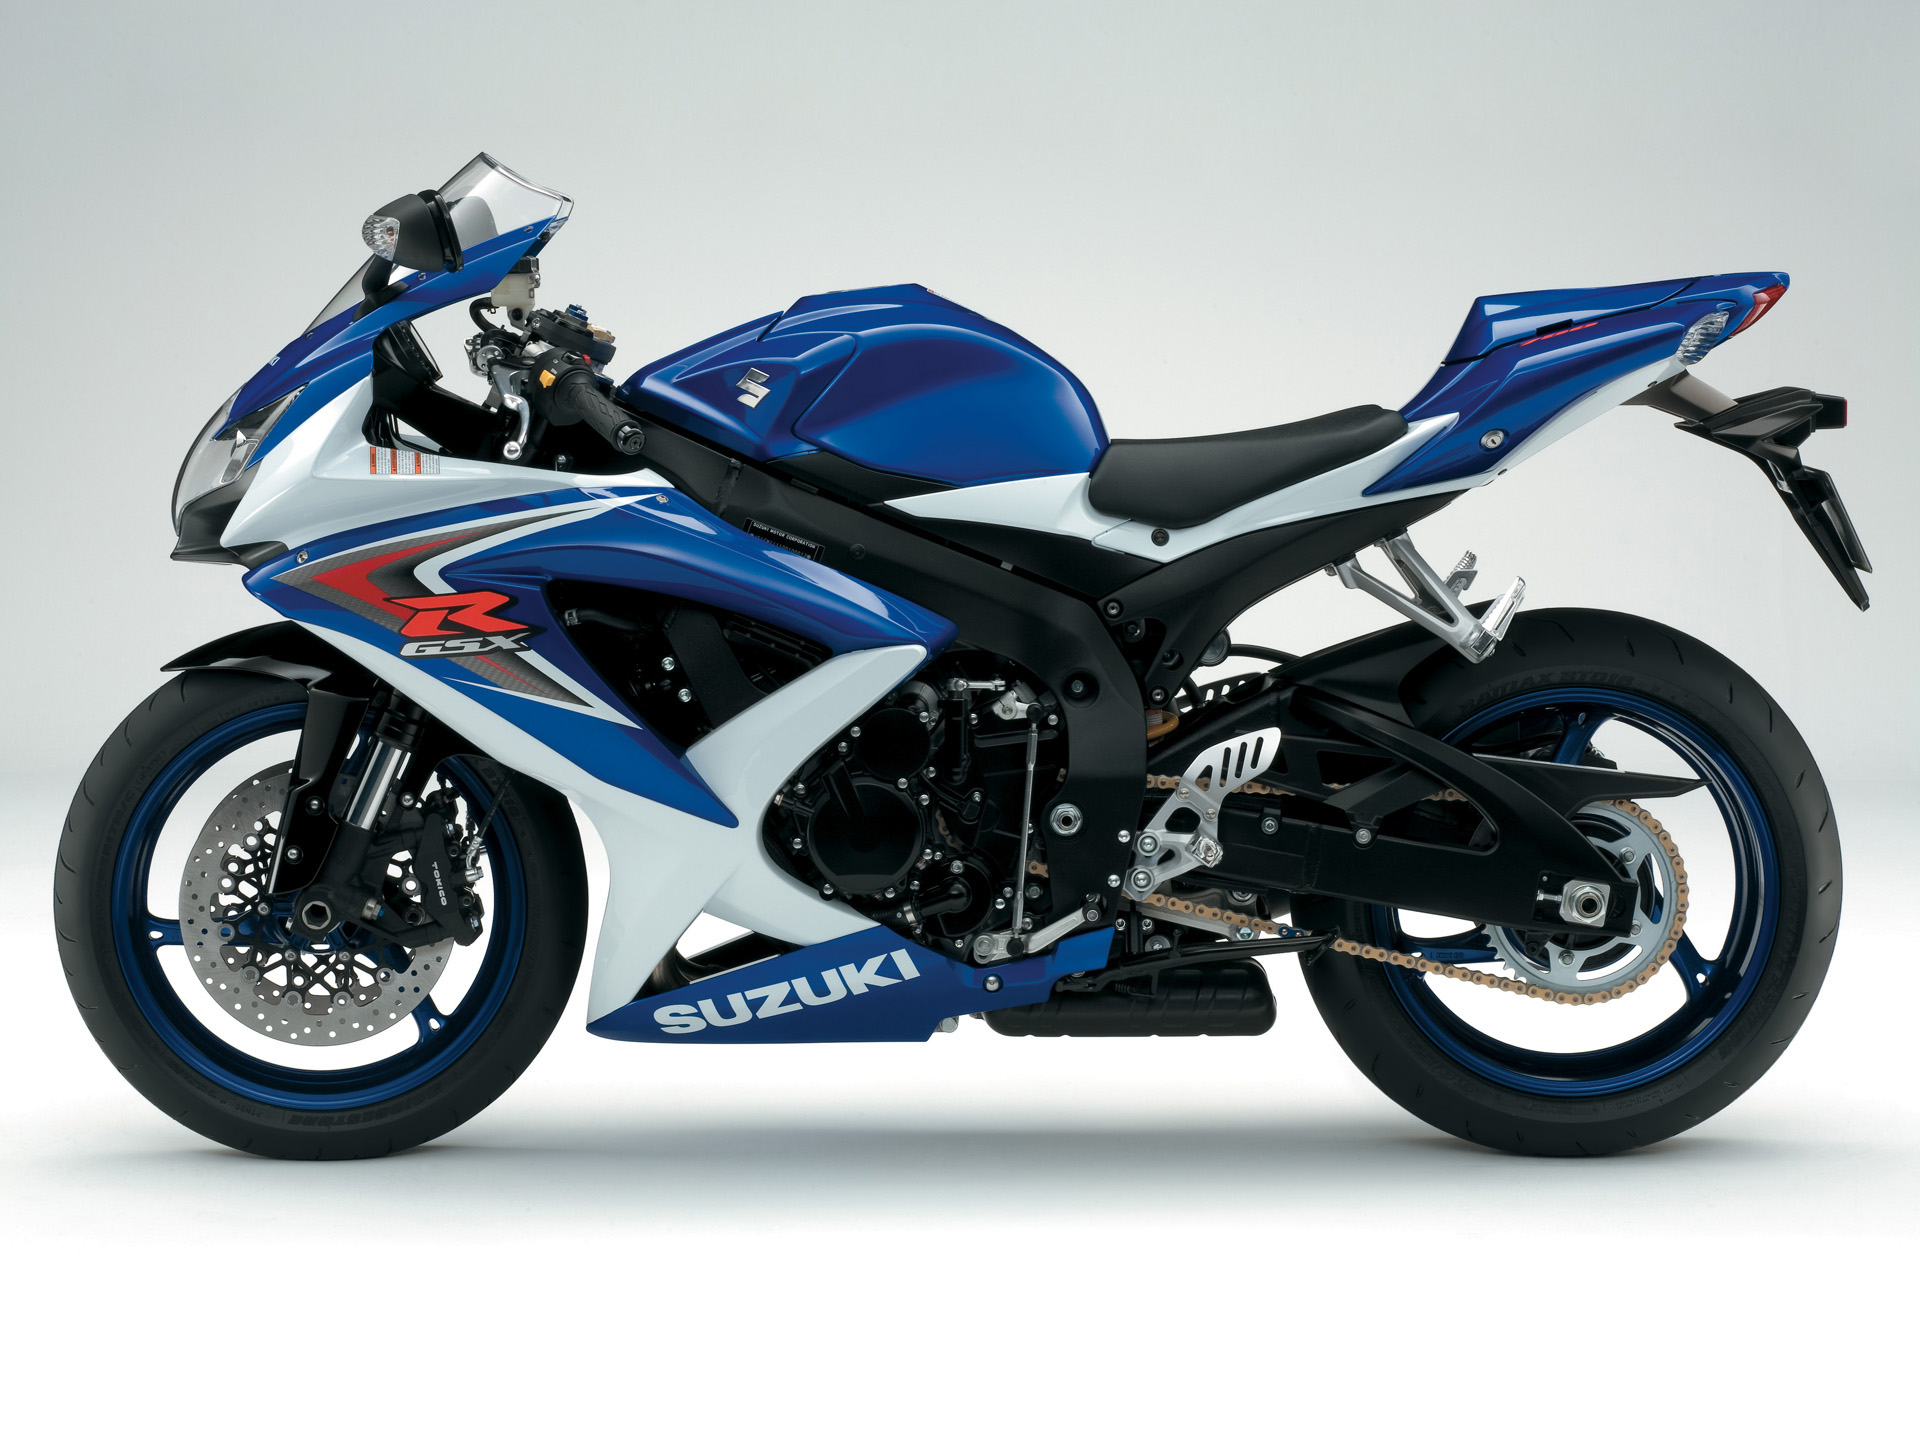 Suzuki GSX-R750 photo 53818